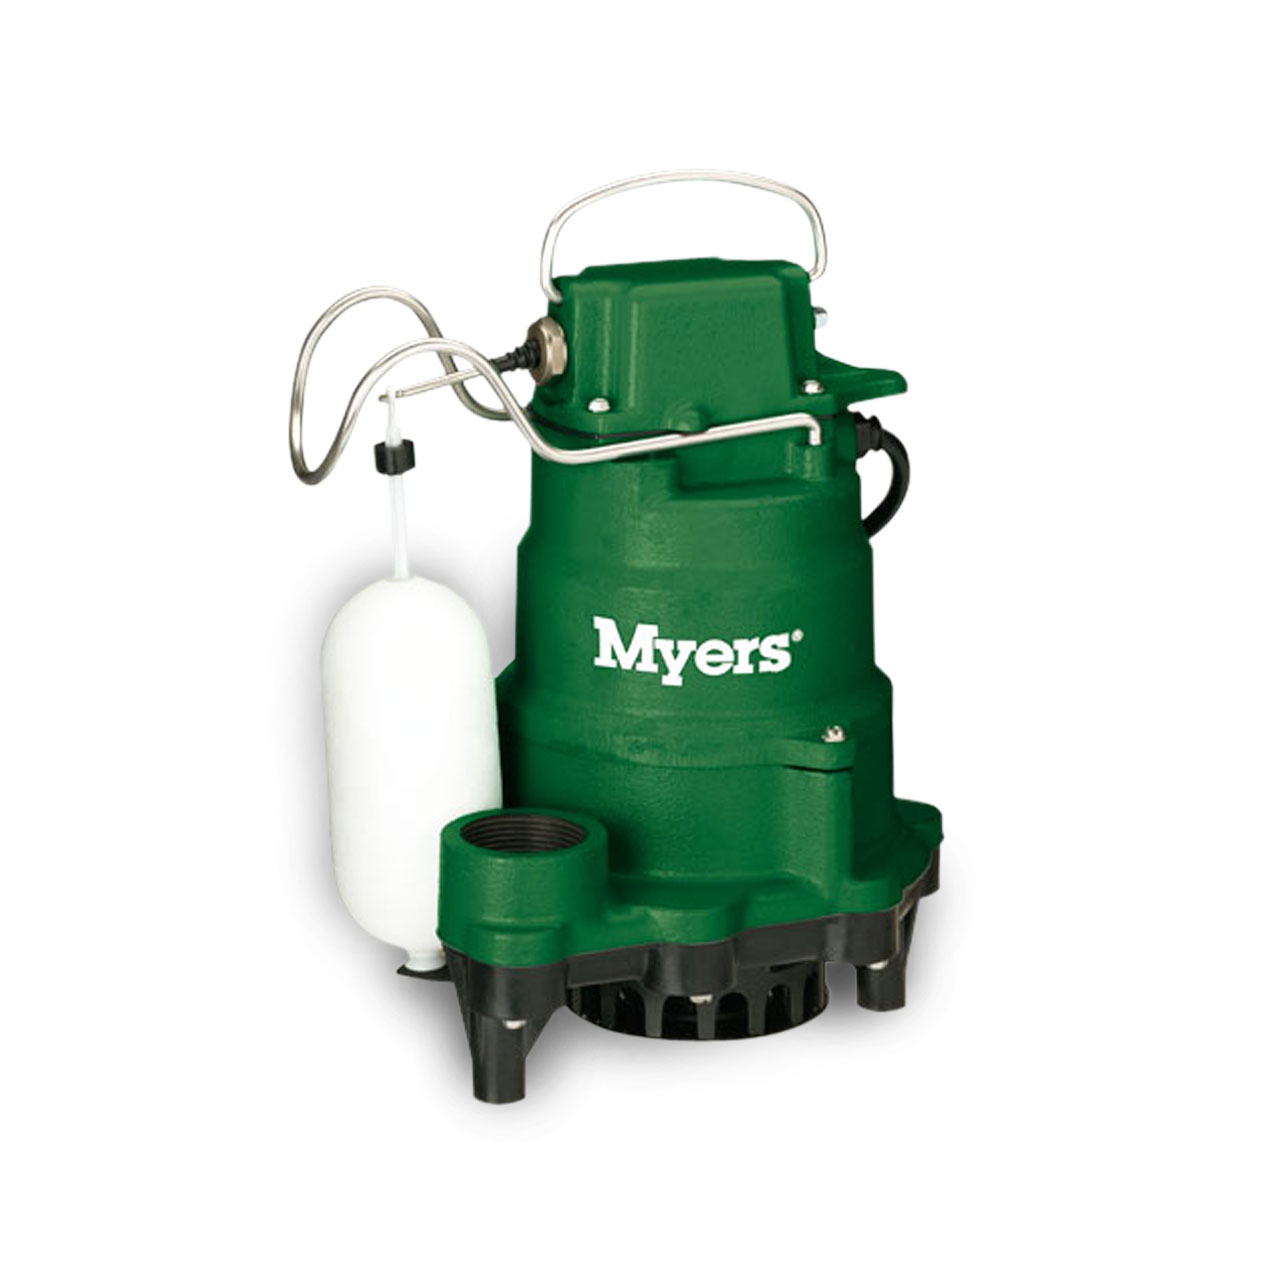 hight resolution of myers myers mci033m 20 sump pump 0 33 hp 115v 20 cord manual myrmci033m20